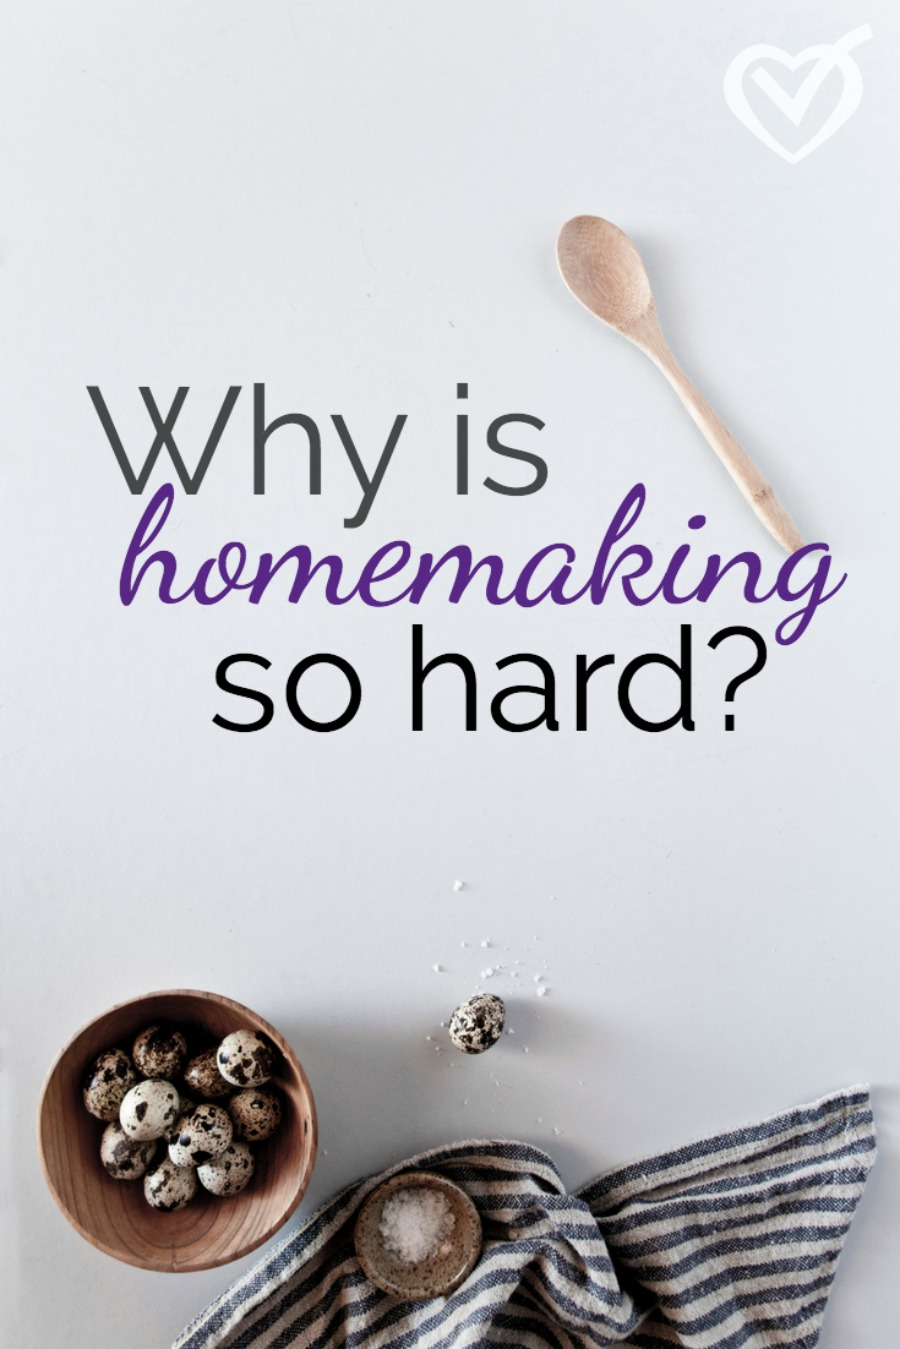 Why is homemaking hard?